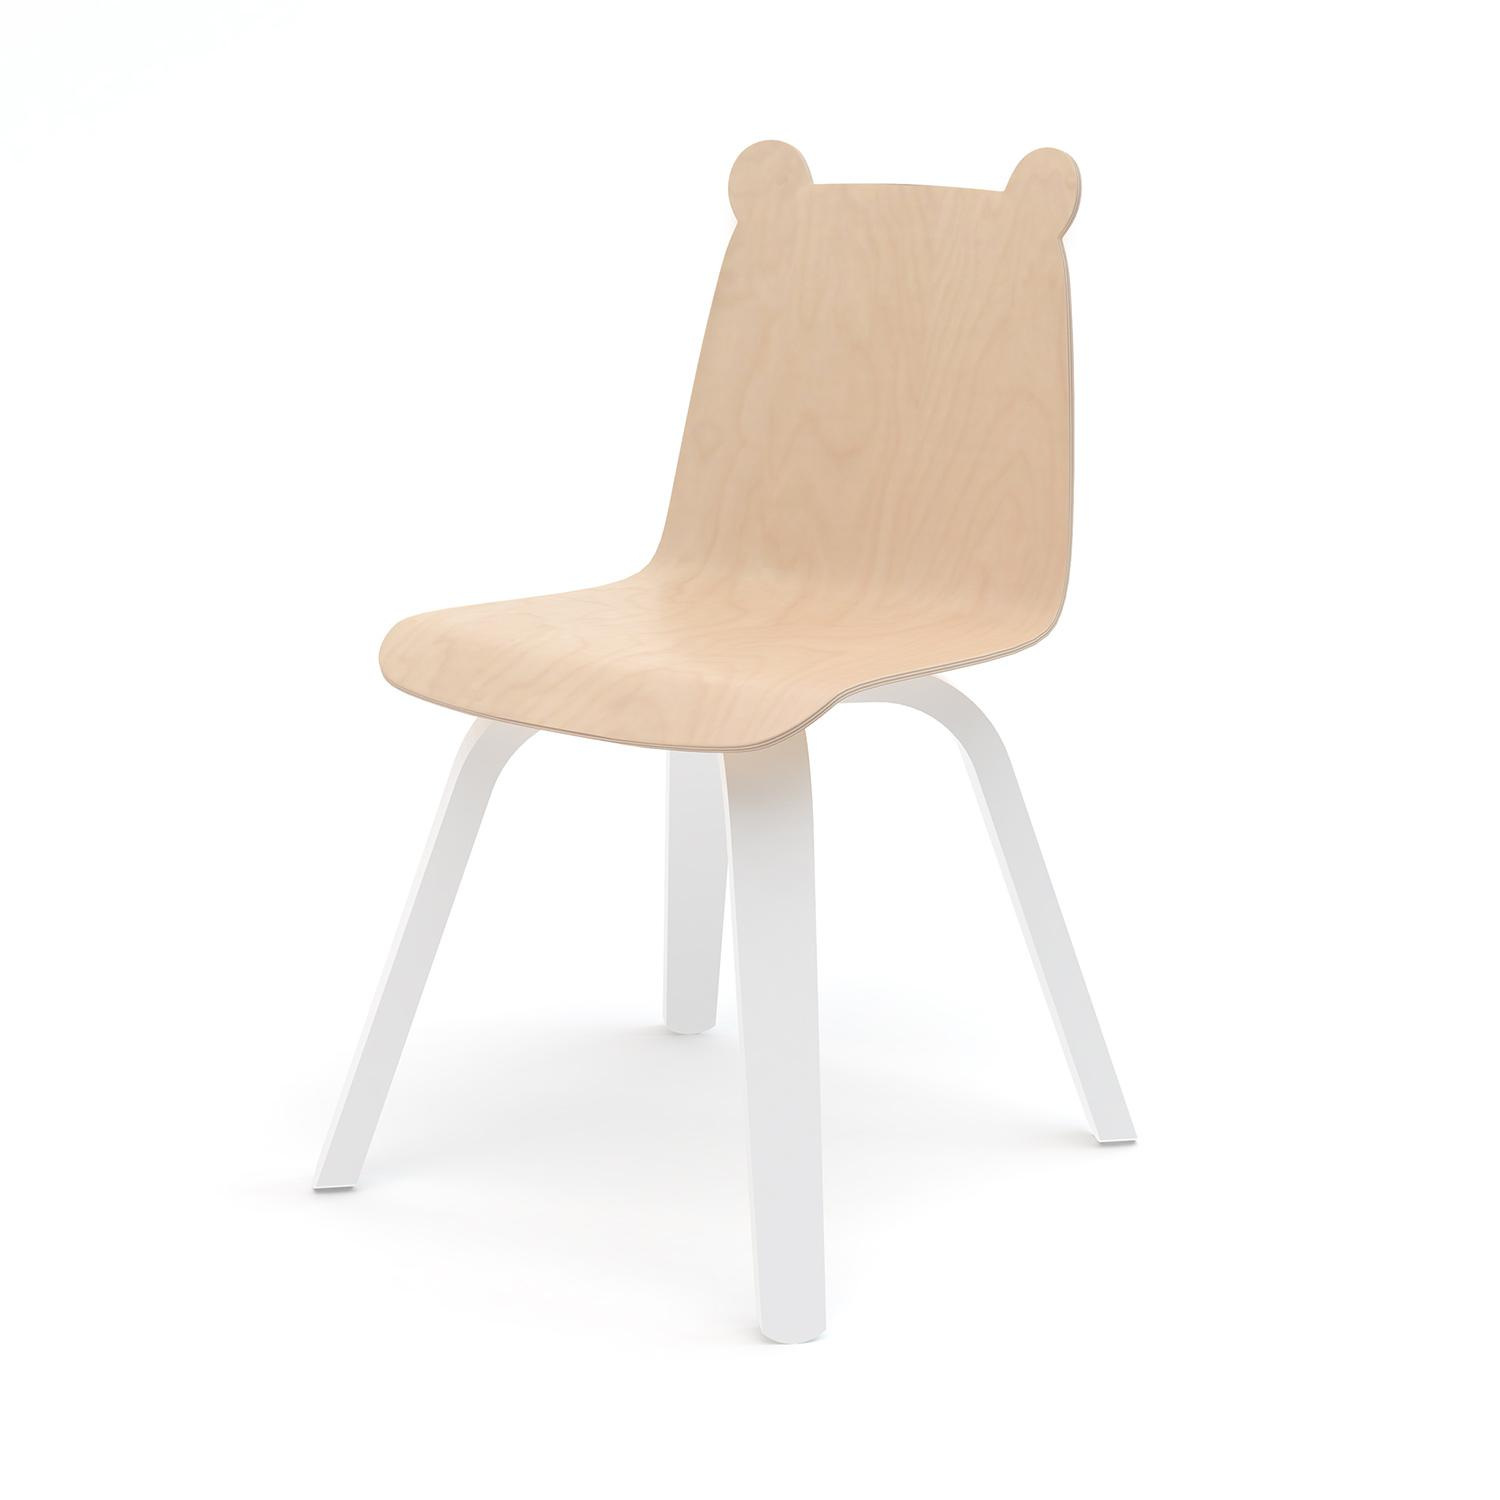 Outstanding Play Chairs Machost Co Dining Chair Design Ideas Machostcouk